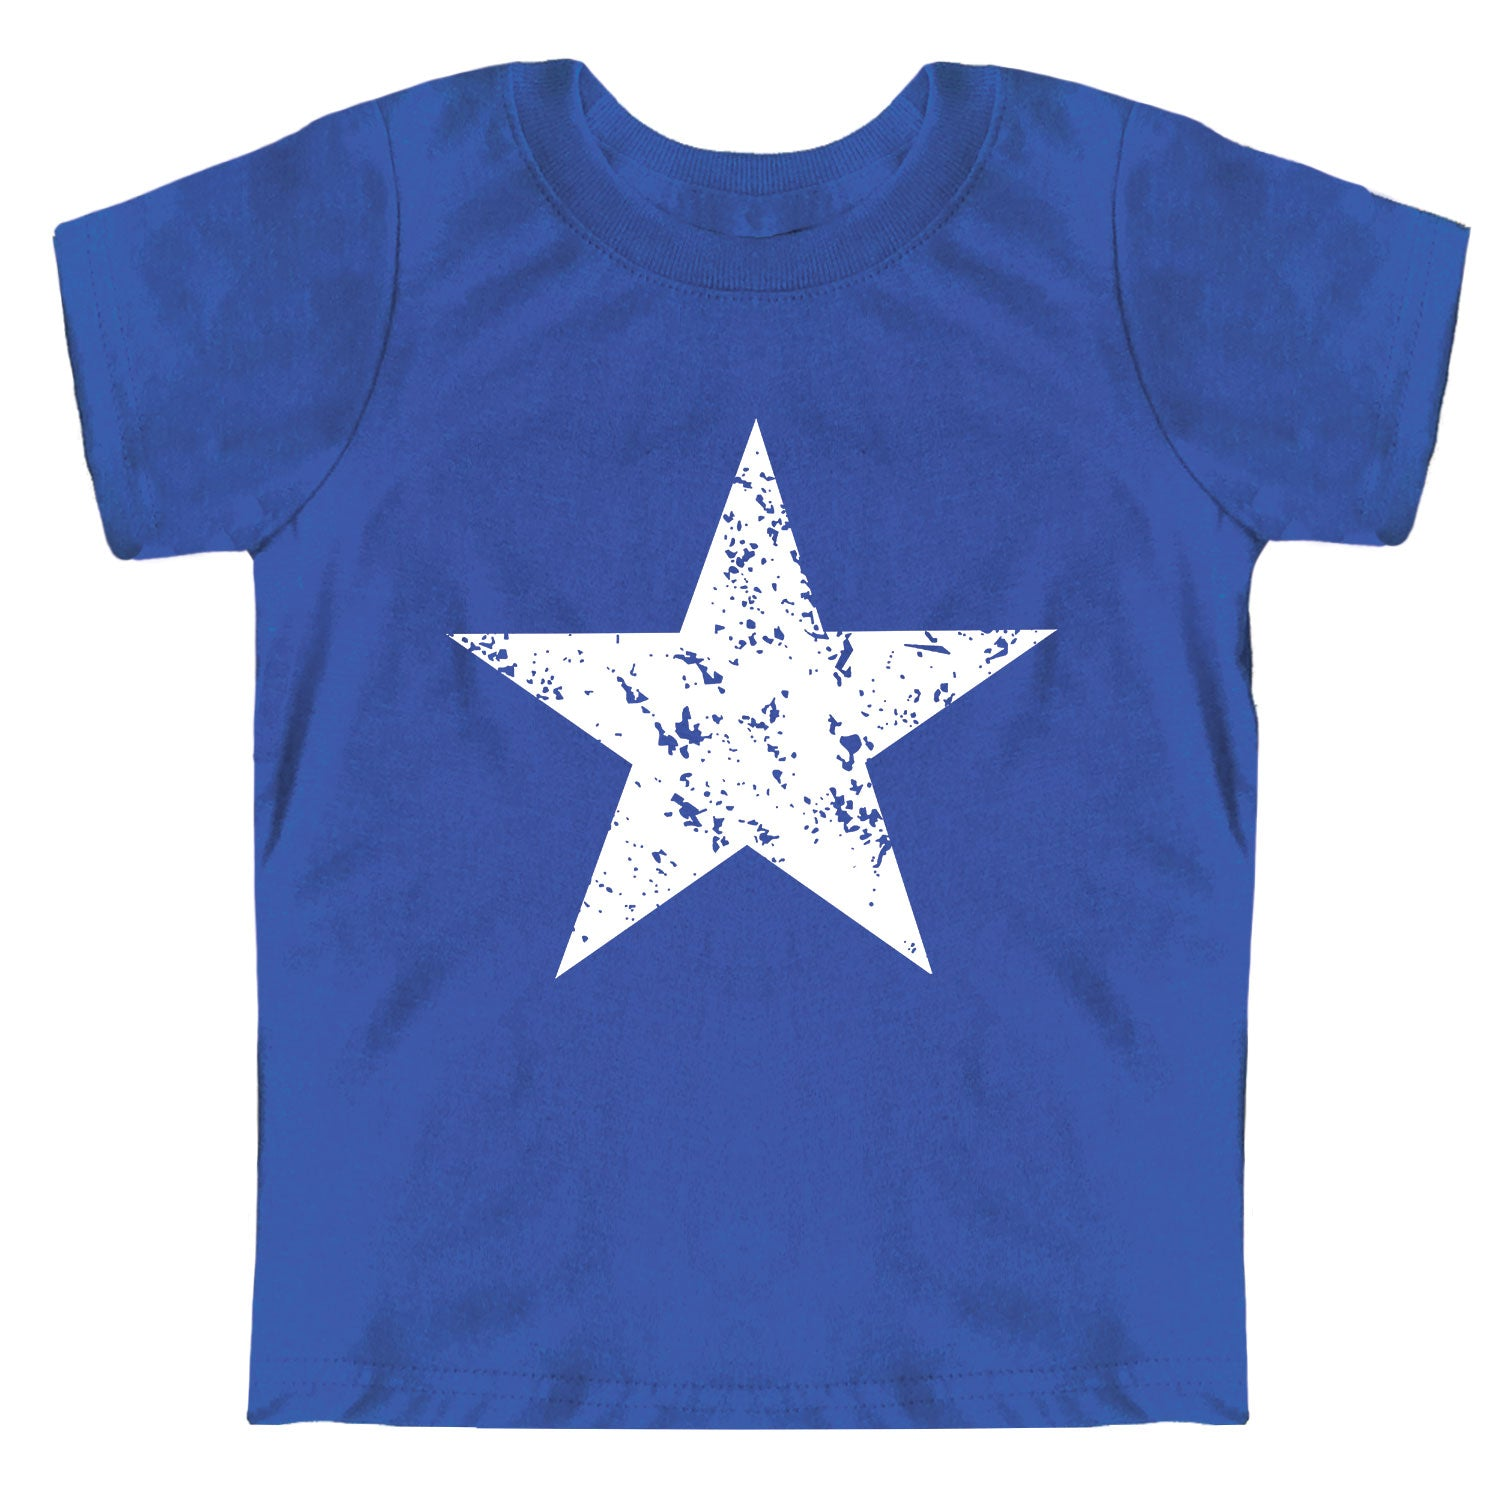 Distressed Star Toddler Jersey Tee